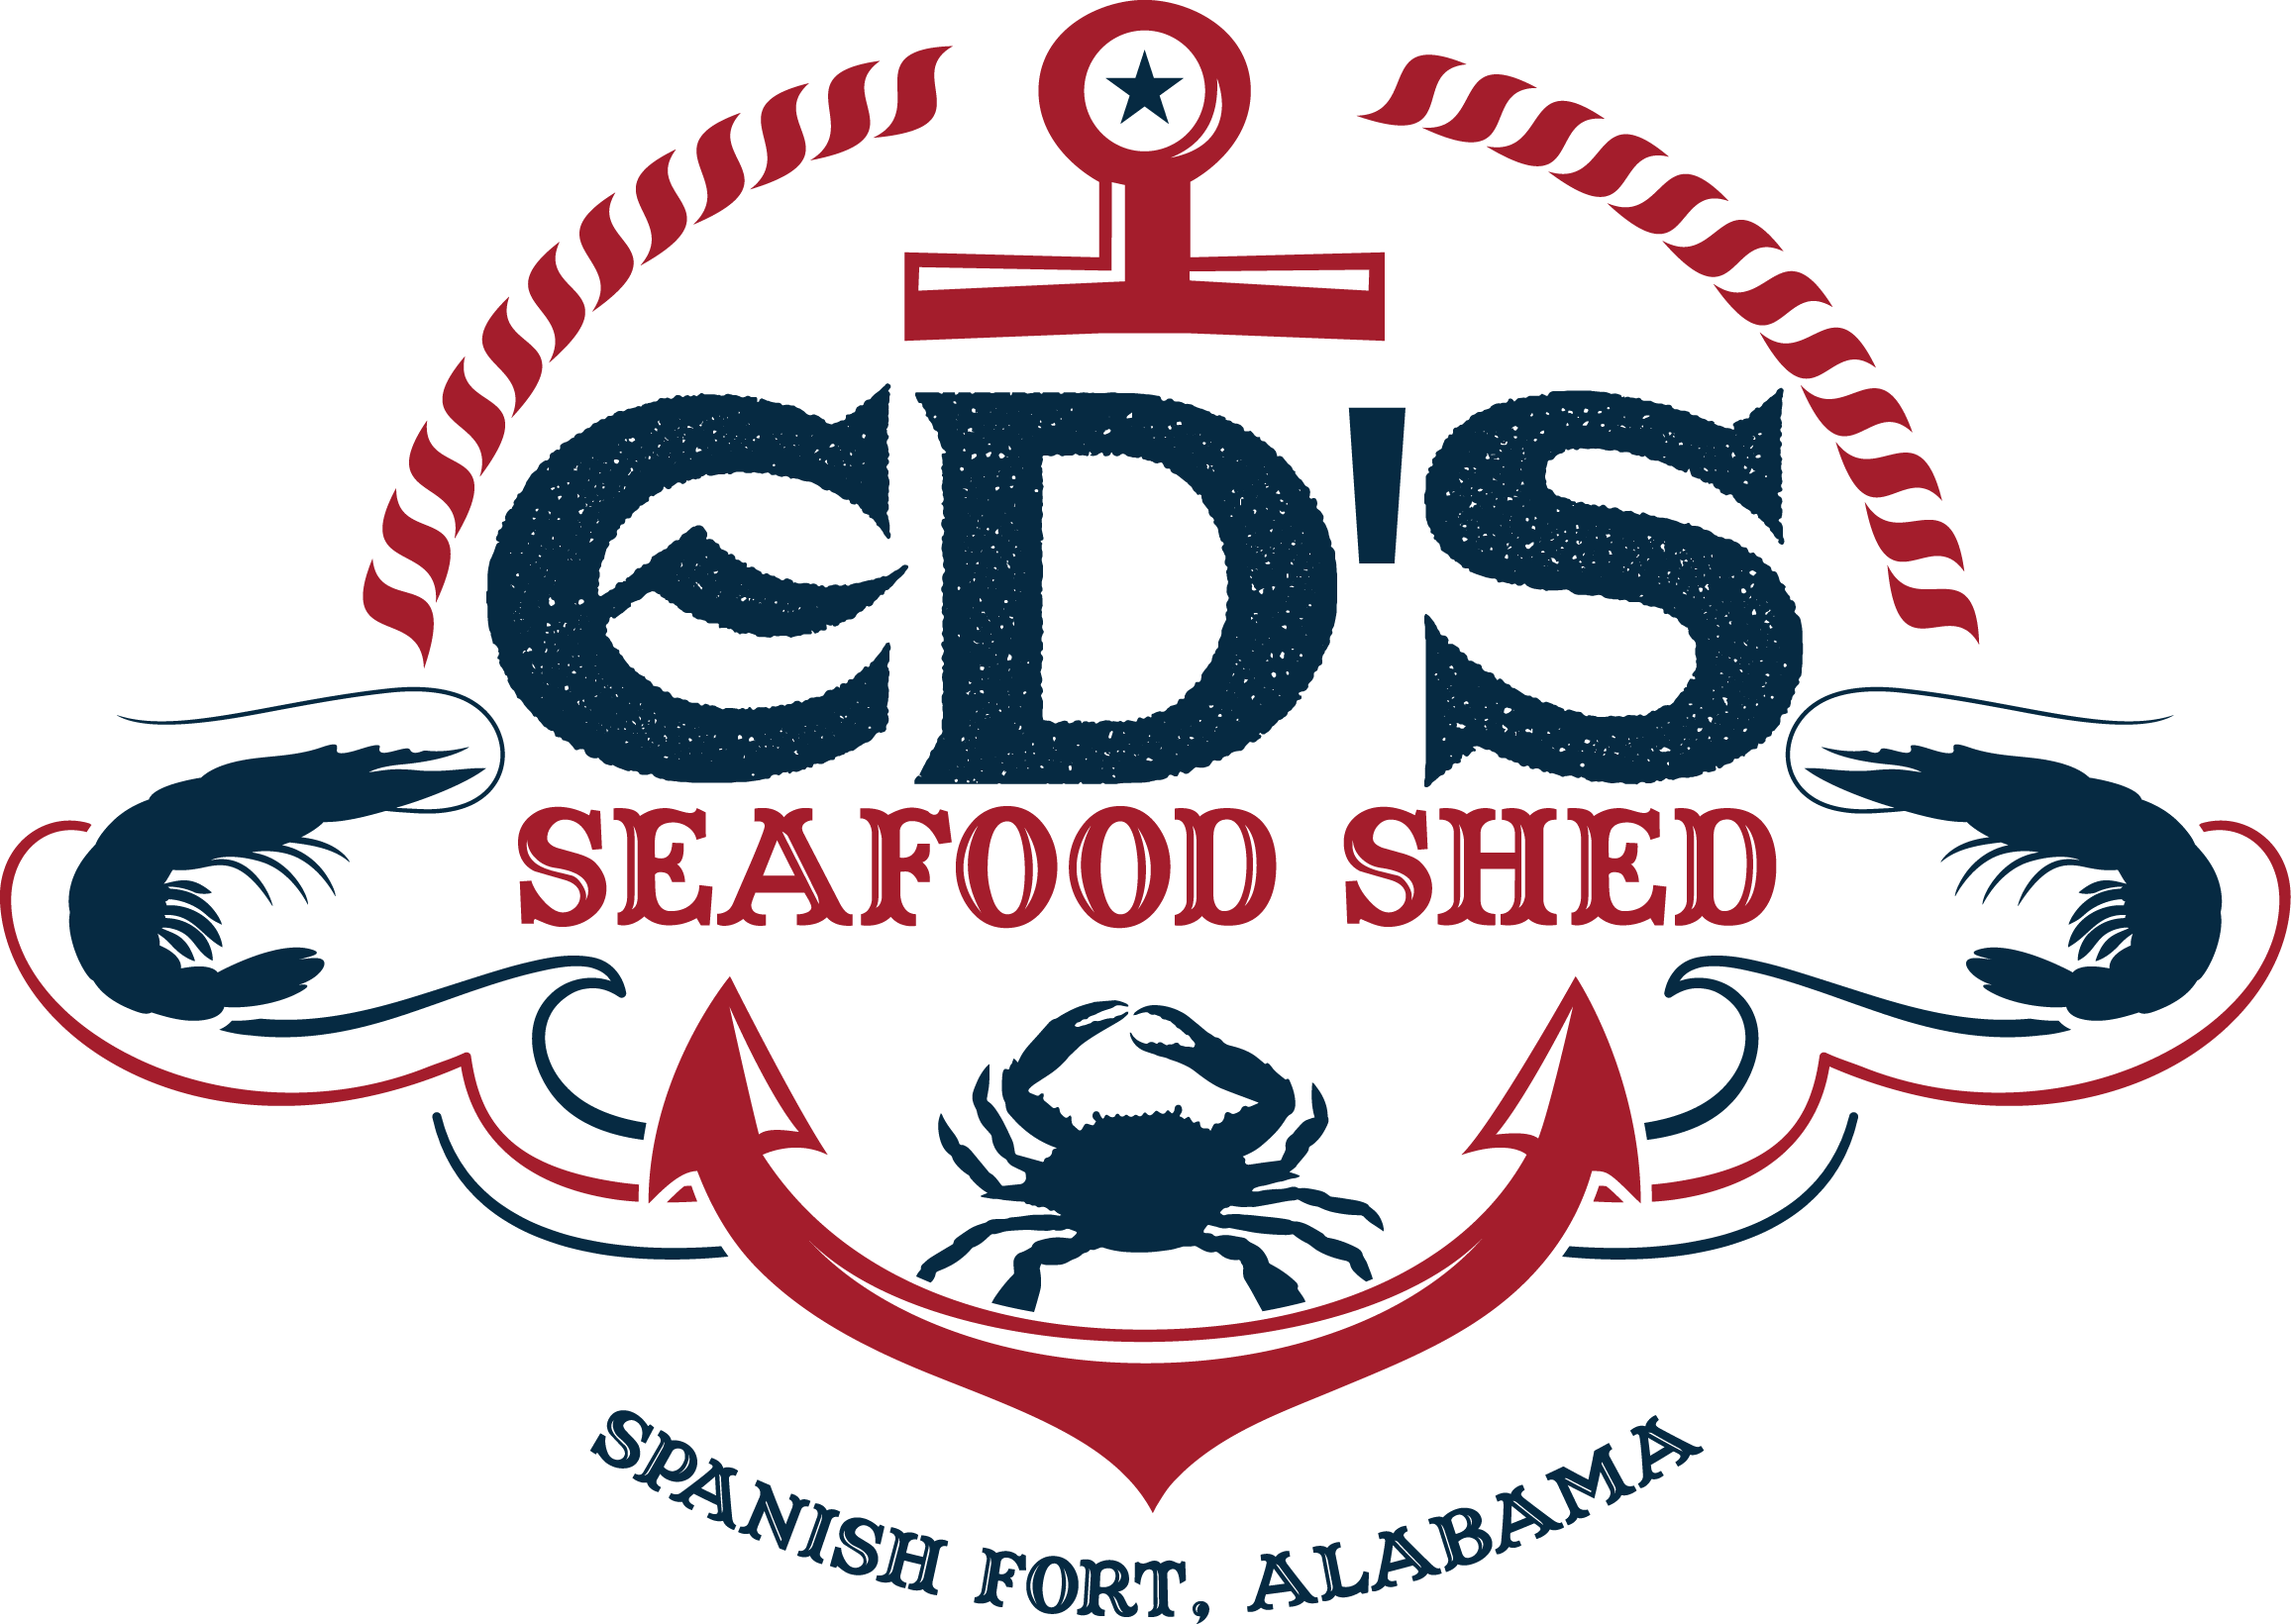 ED'S Seafood SHED-FF